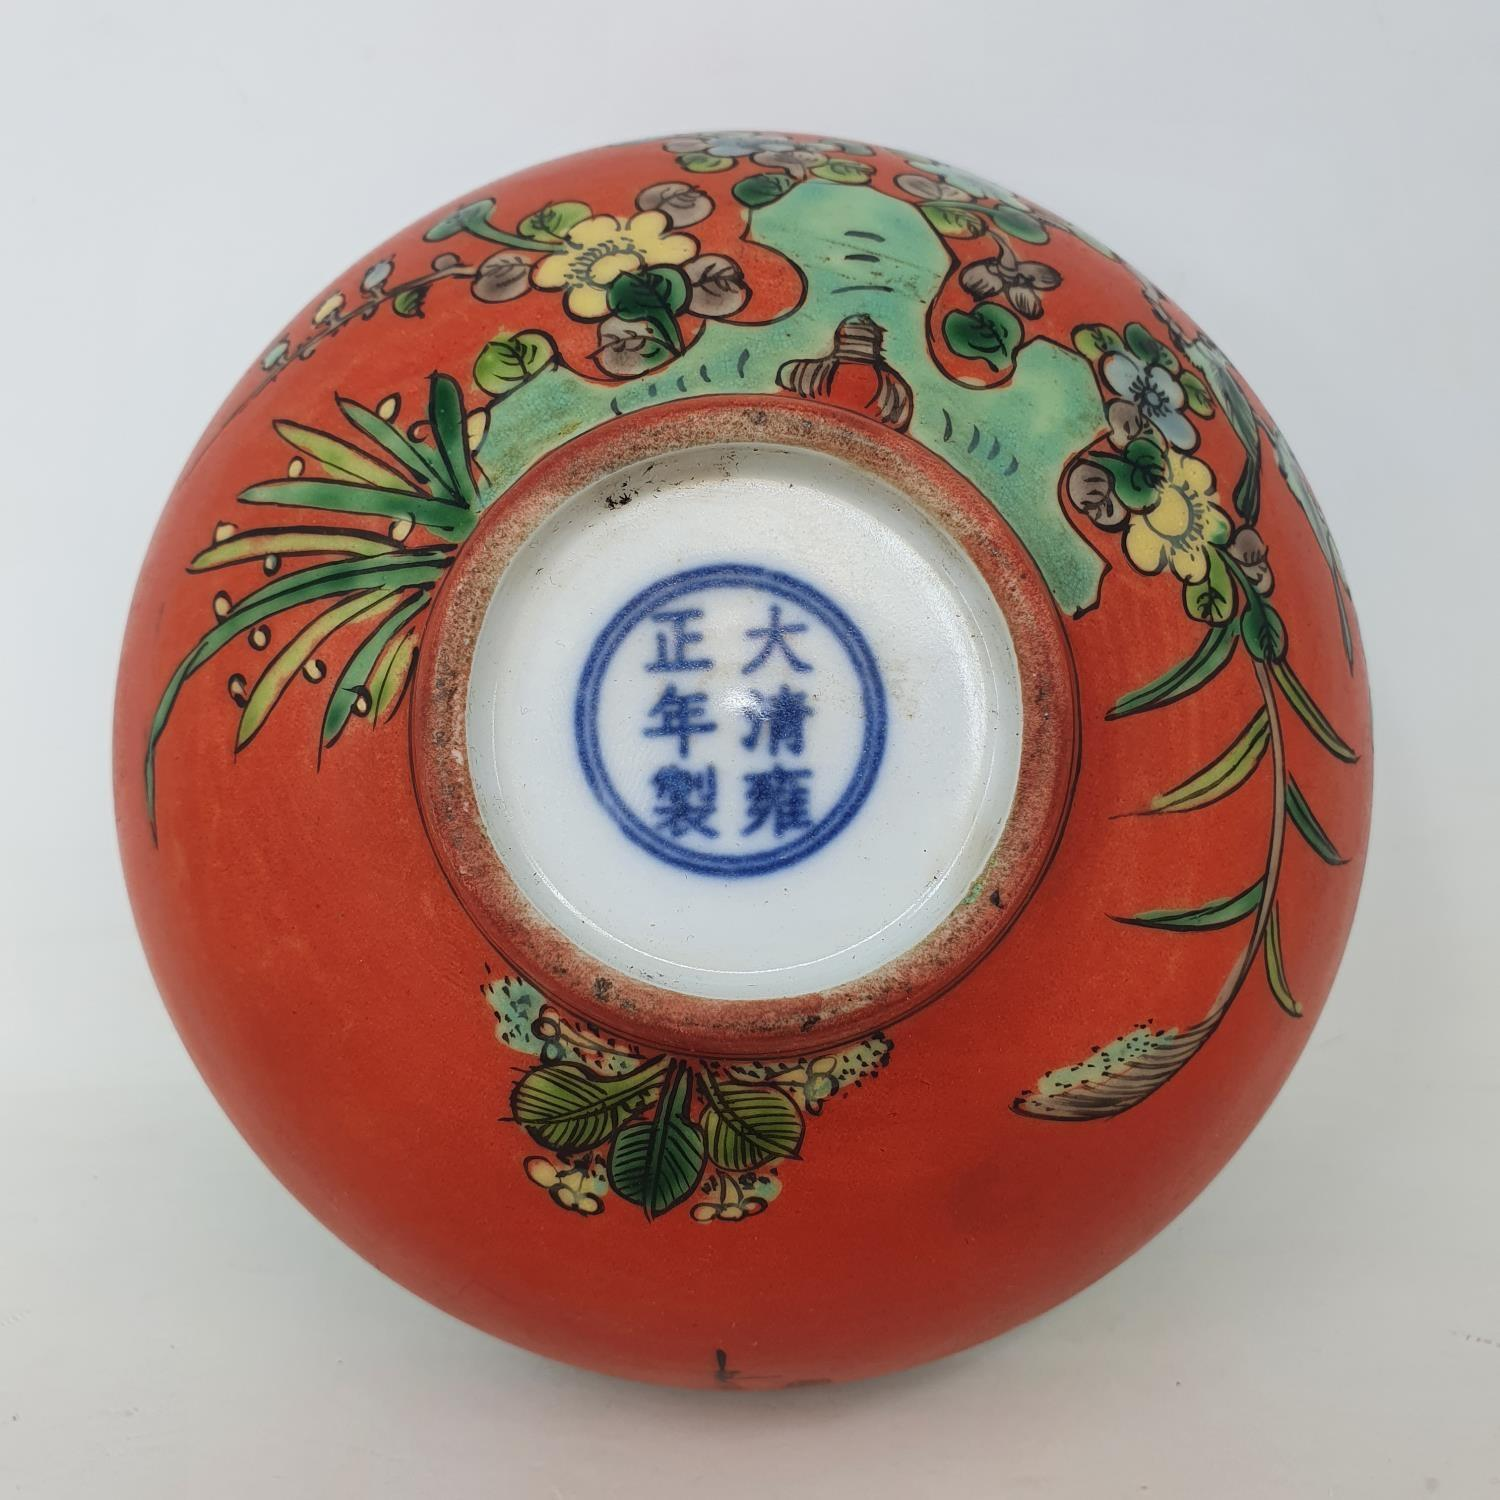 A Chinese red ground bowl, decorated birds, flowers and script, six character mark to base, 14 cm - Image 6 of 6